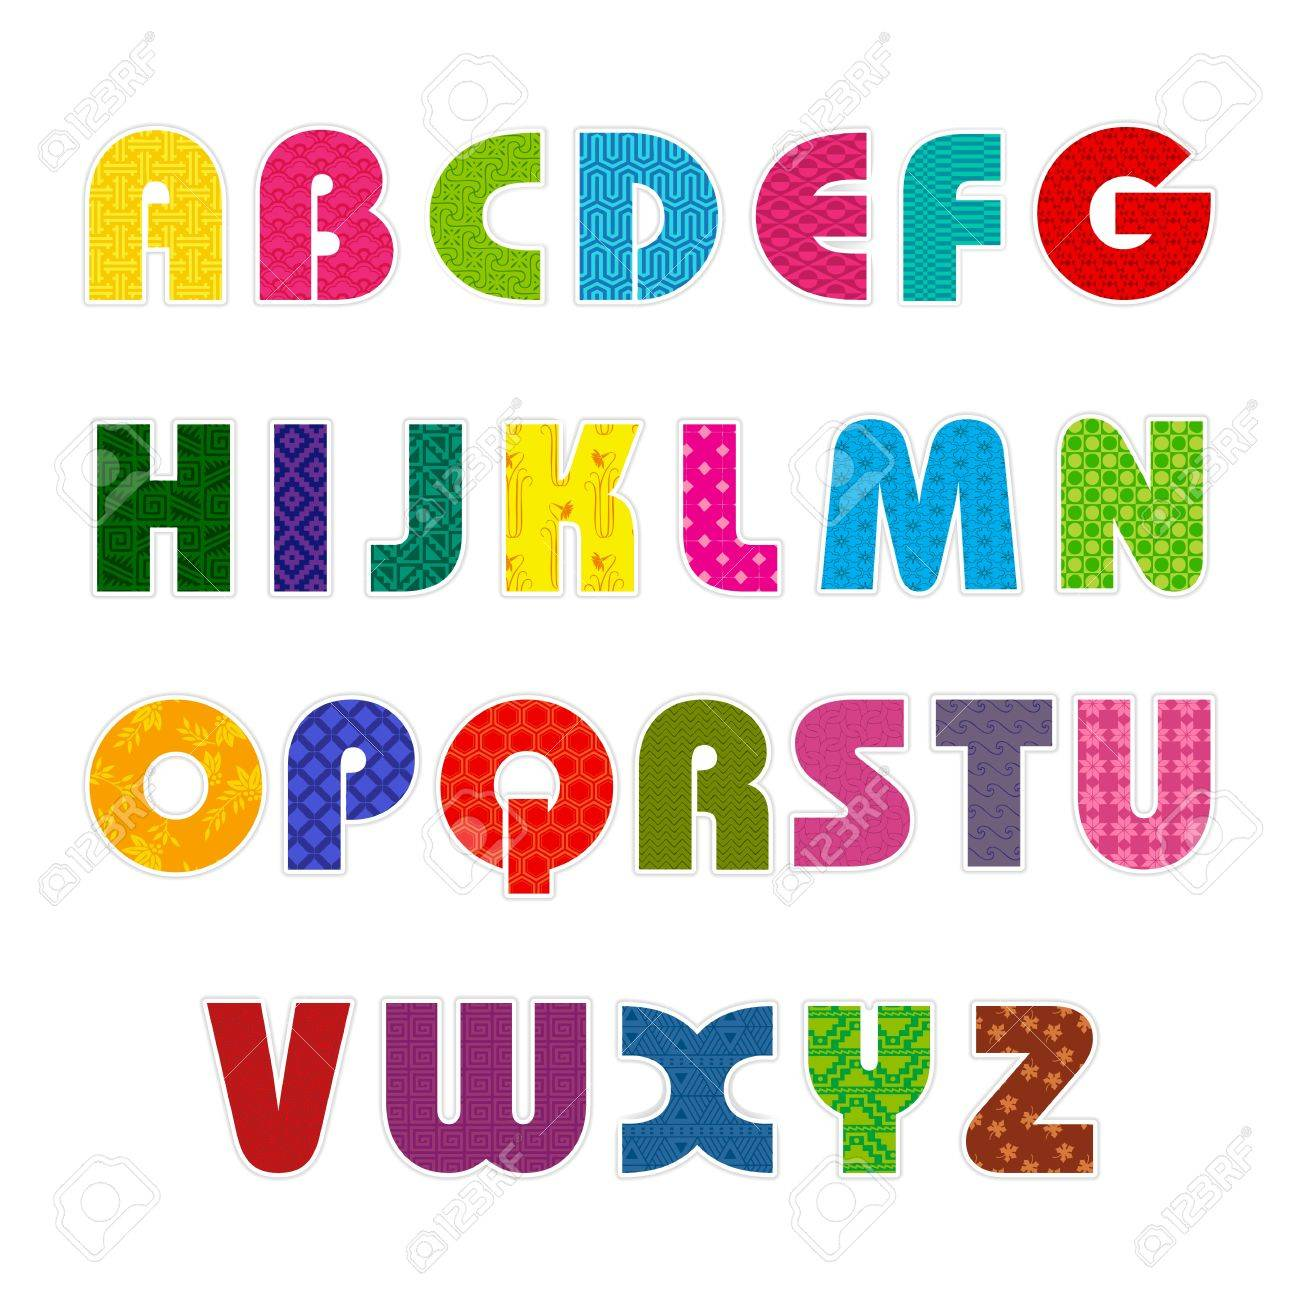 Download alphabet stock photos Affordable and search from millions of royalty free images photos and vectors Thousands of images added daily